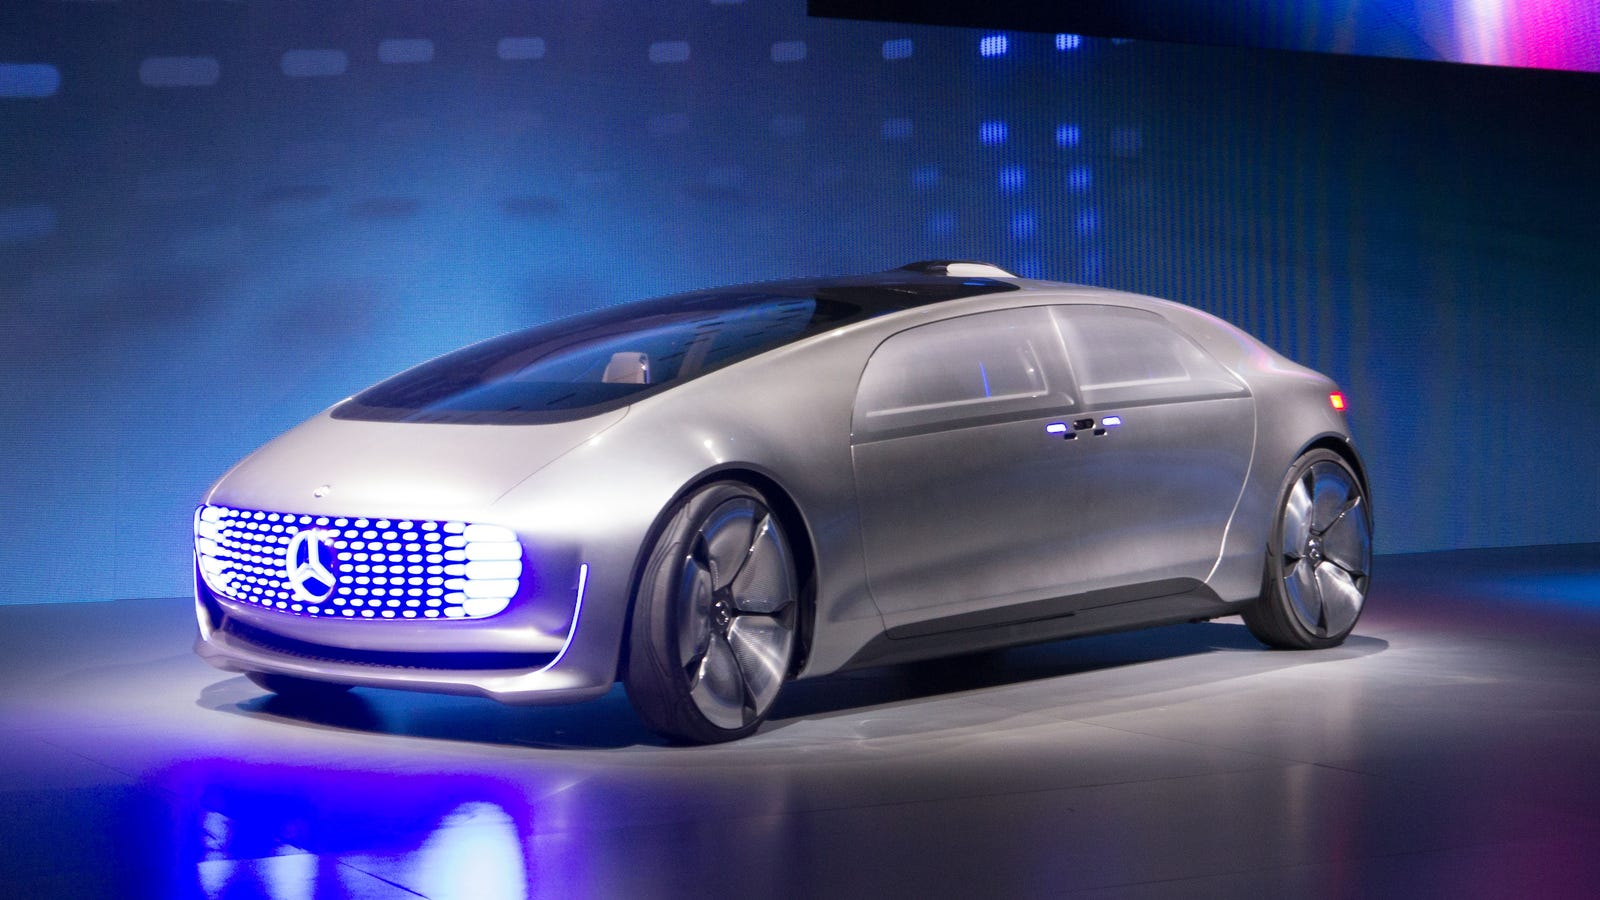 Mercedes F 015 >> The New Mercedes Self-Driving Car Concept Is Packed Full ...